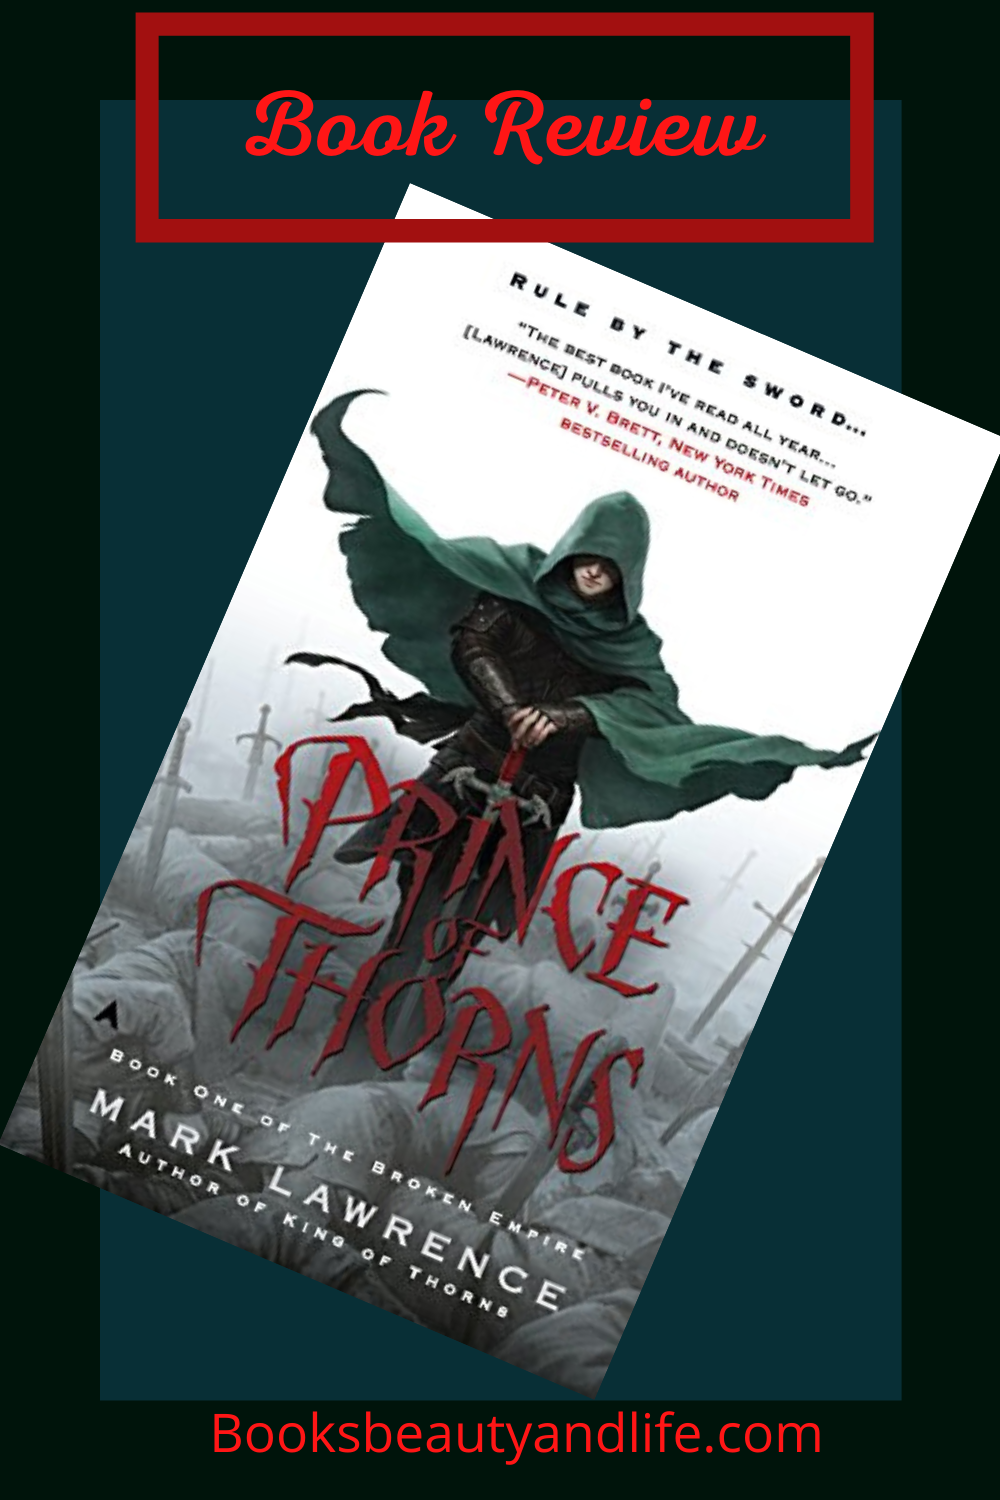 Prince of Thorns by Mark Lawrence – Review